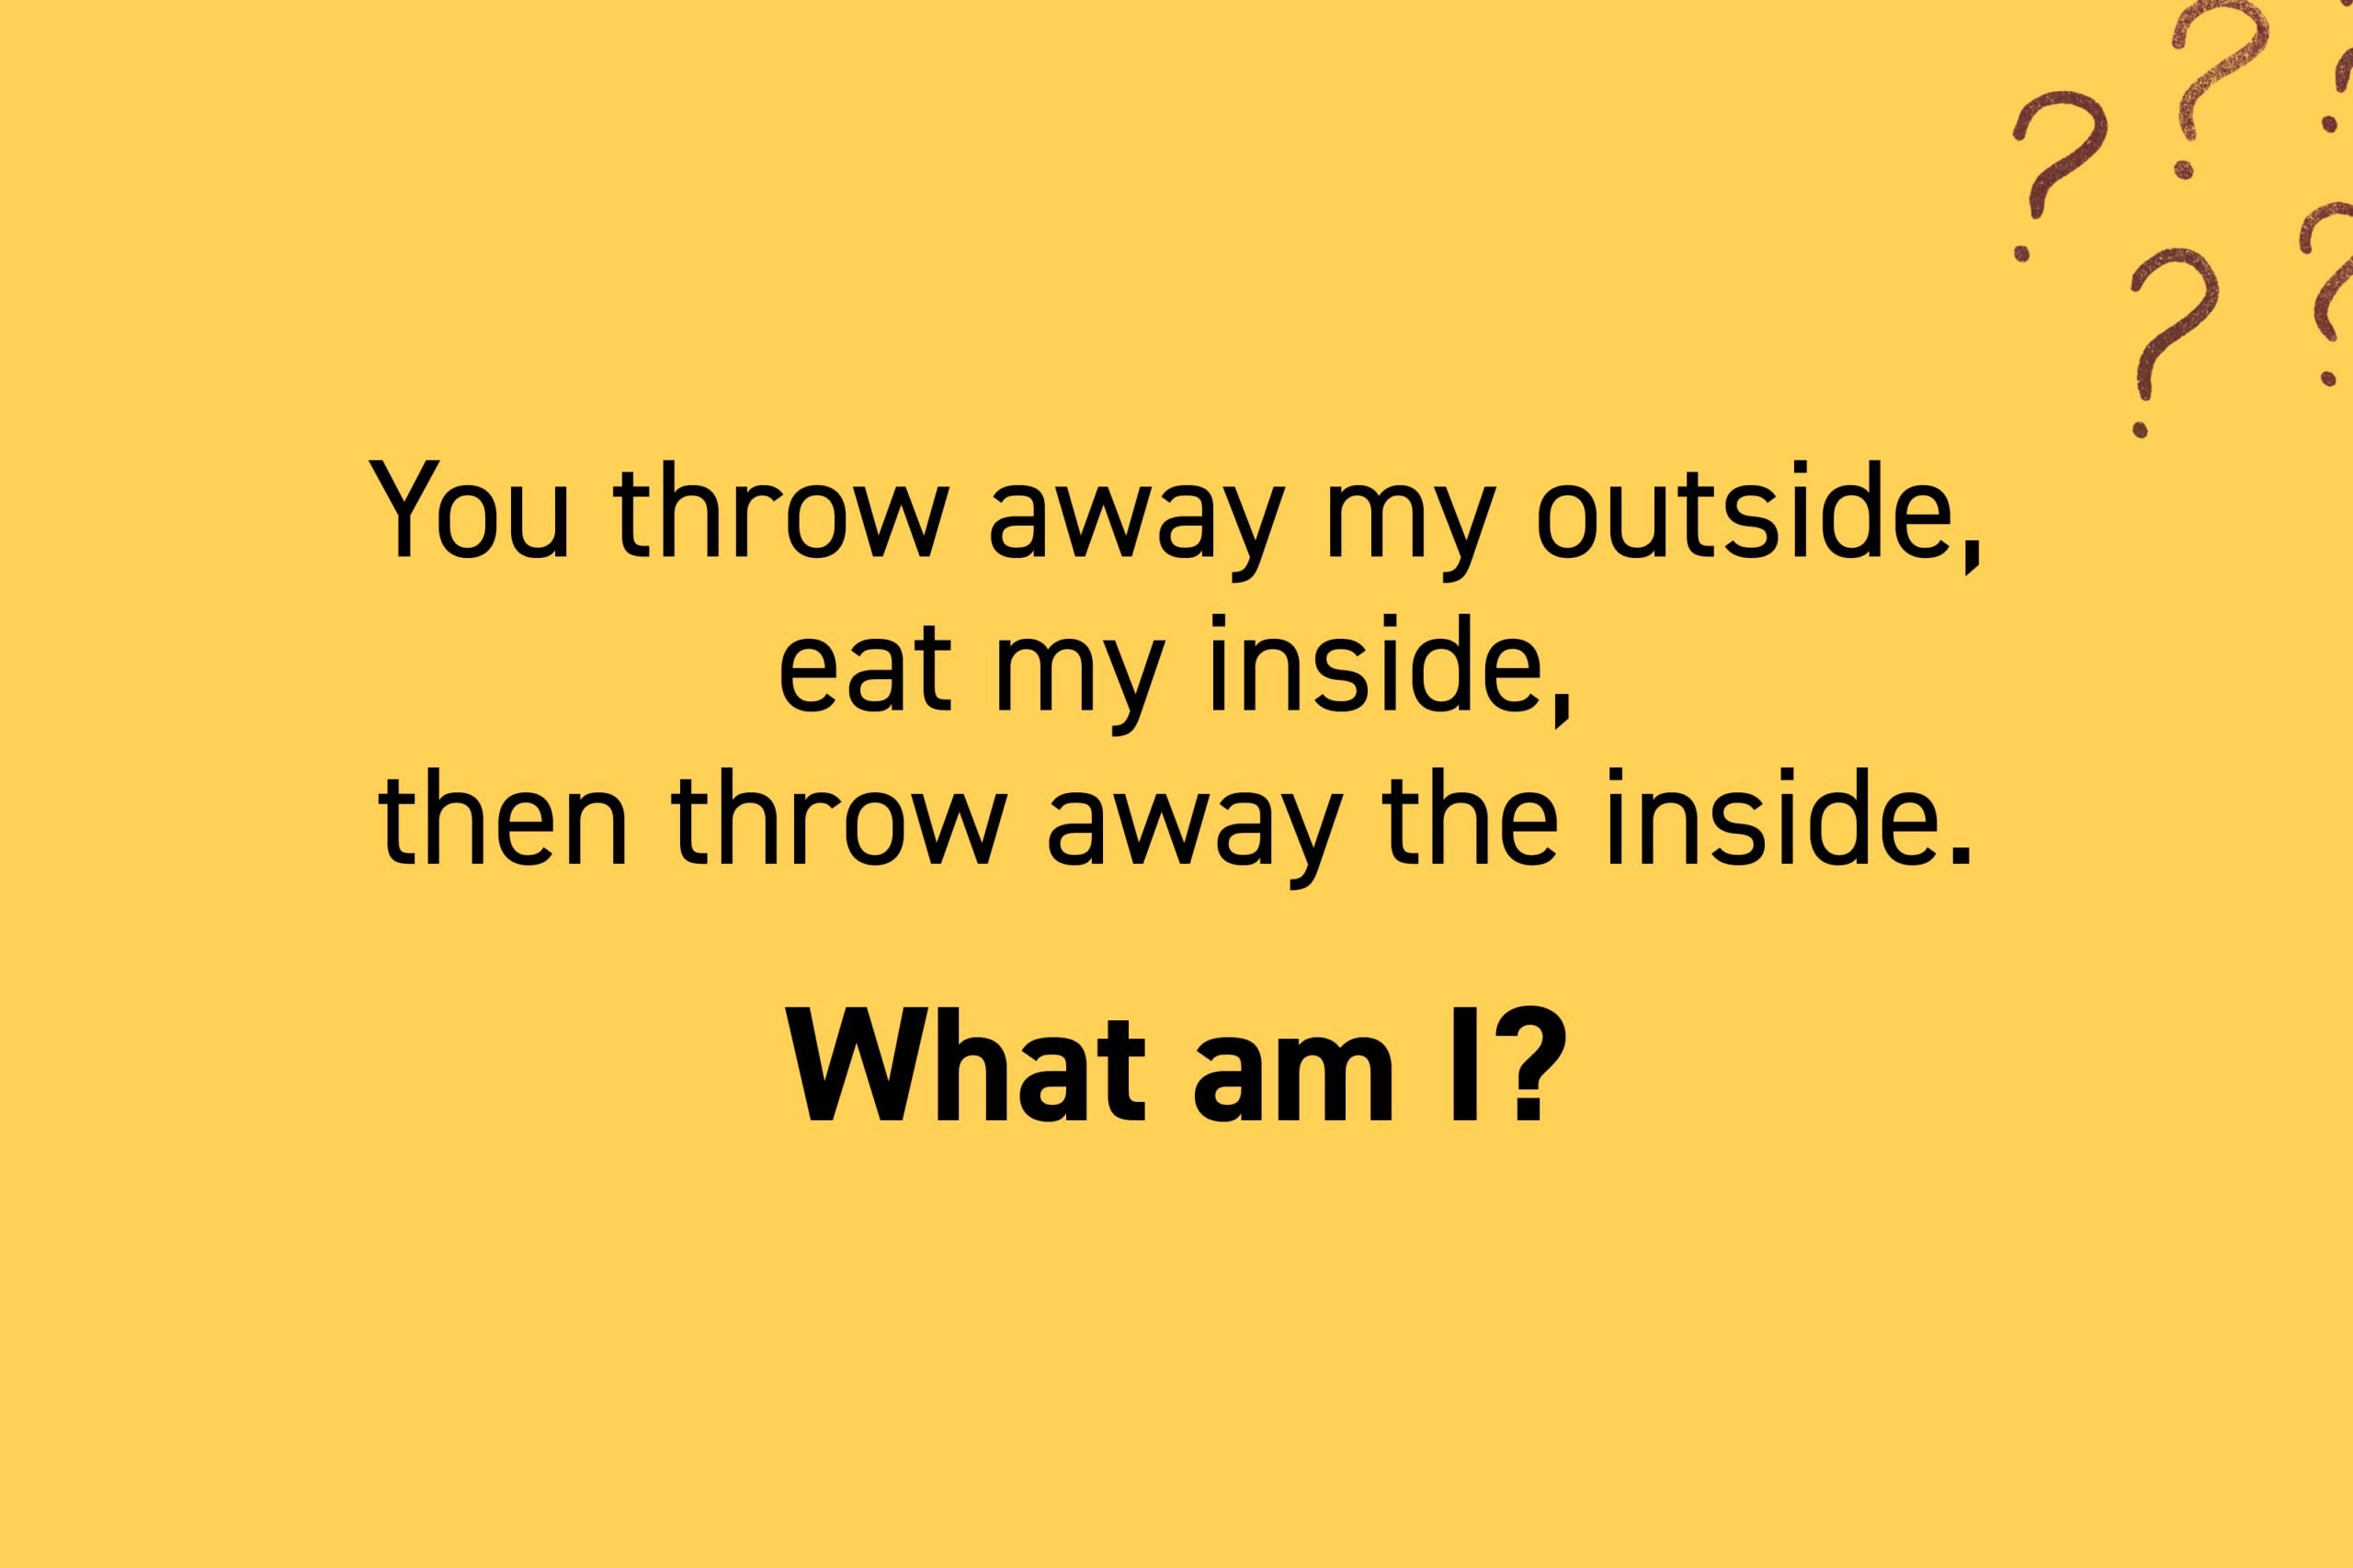 You throw away my outside, eat my inside, then throw away the inside. What am I?